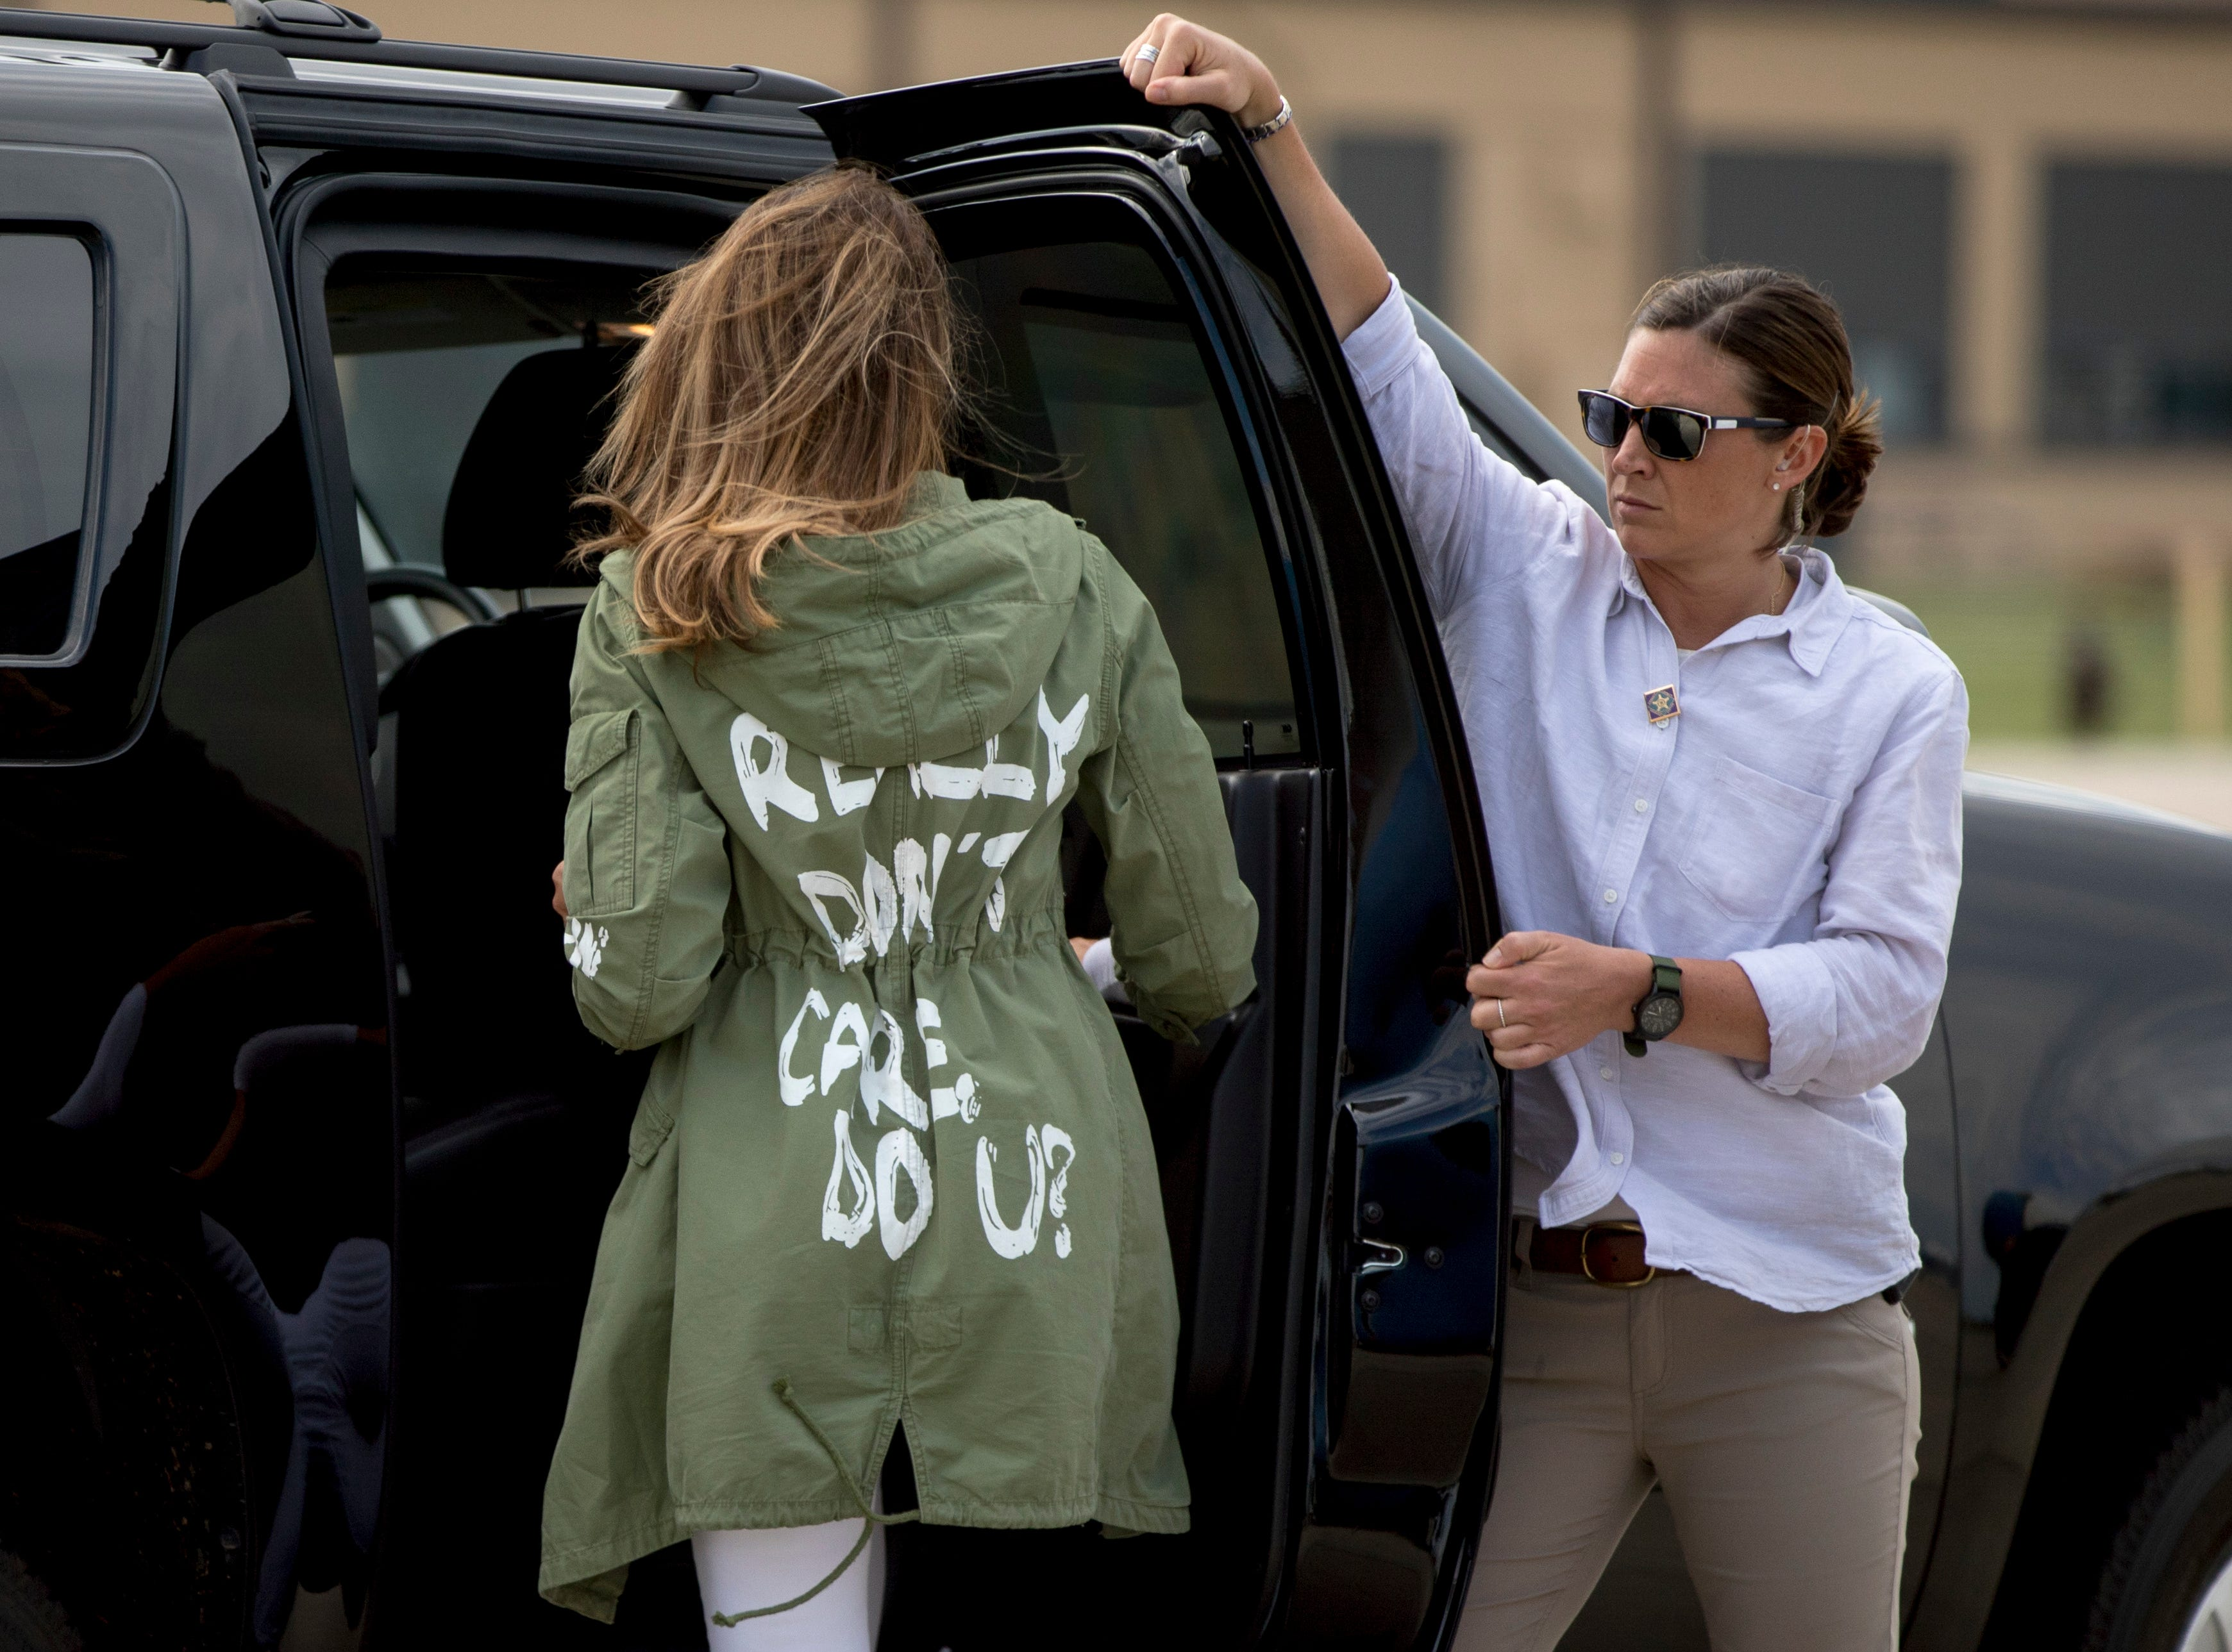 June 21, 2018: First lady Melania Trump walks to her vehicle as she arrives at Andrews Air Force Base, Md. after visiting the Upbring New Hope Children Center run by the Lutheran Social Services of the South in McAllen, Texas.